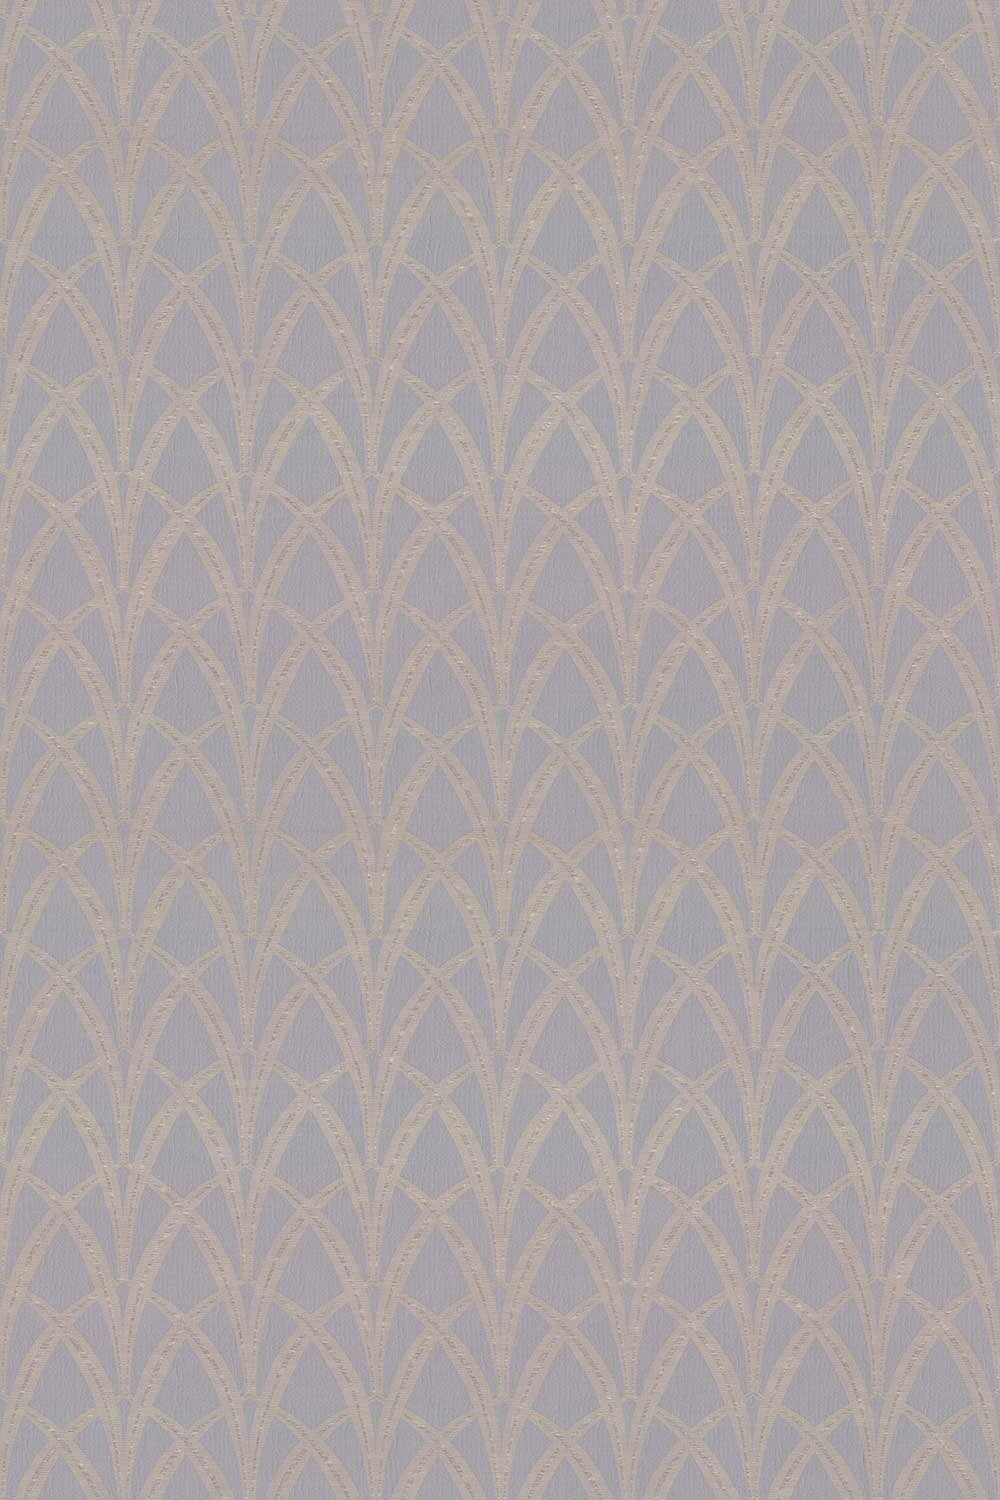 The Chateau by Angel Strawbridge Broadway Silver Fabric - Product code: BRO/SIL/13700FA